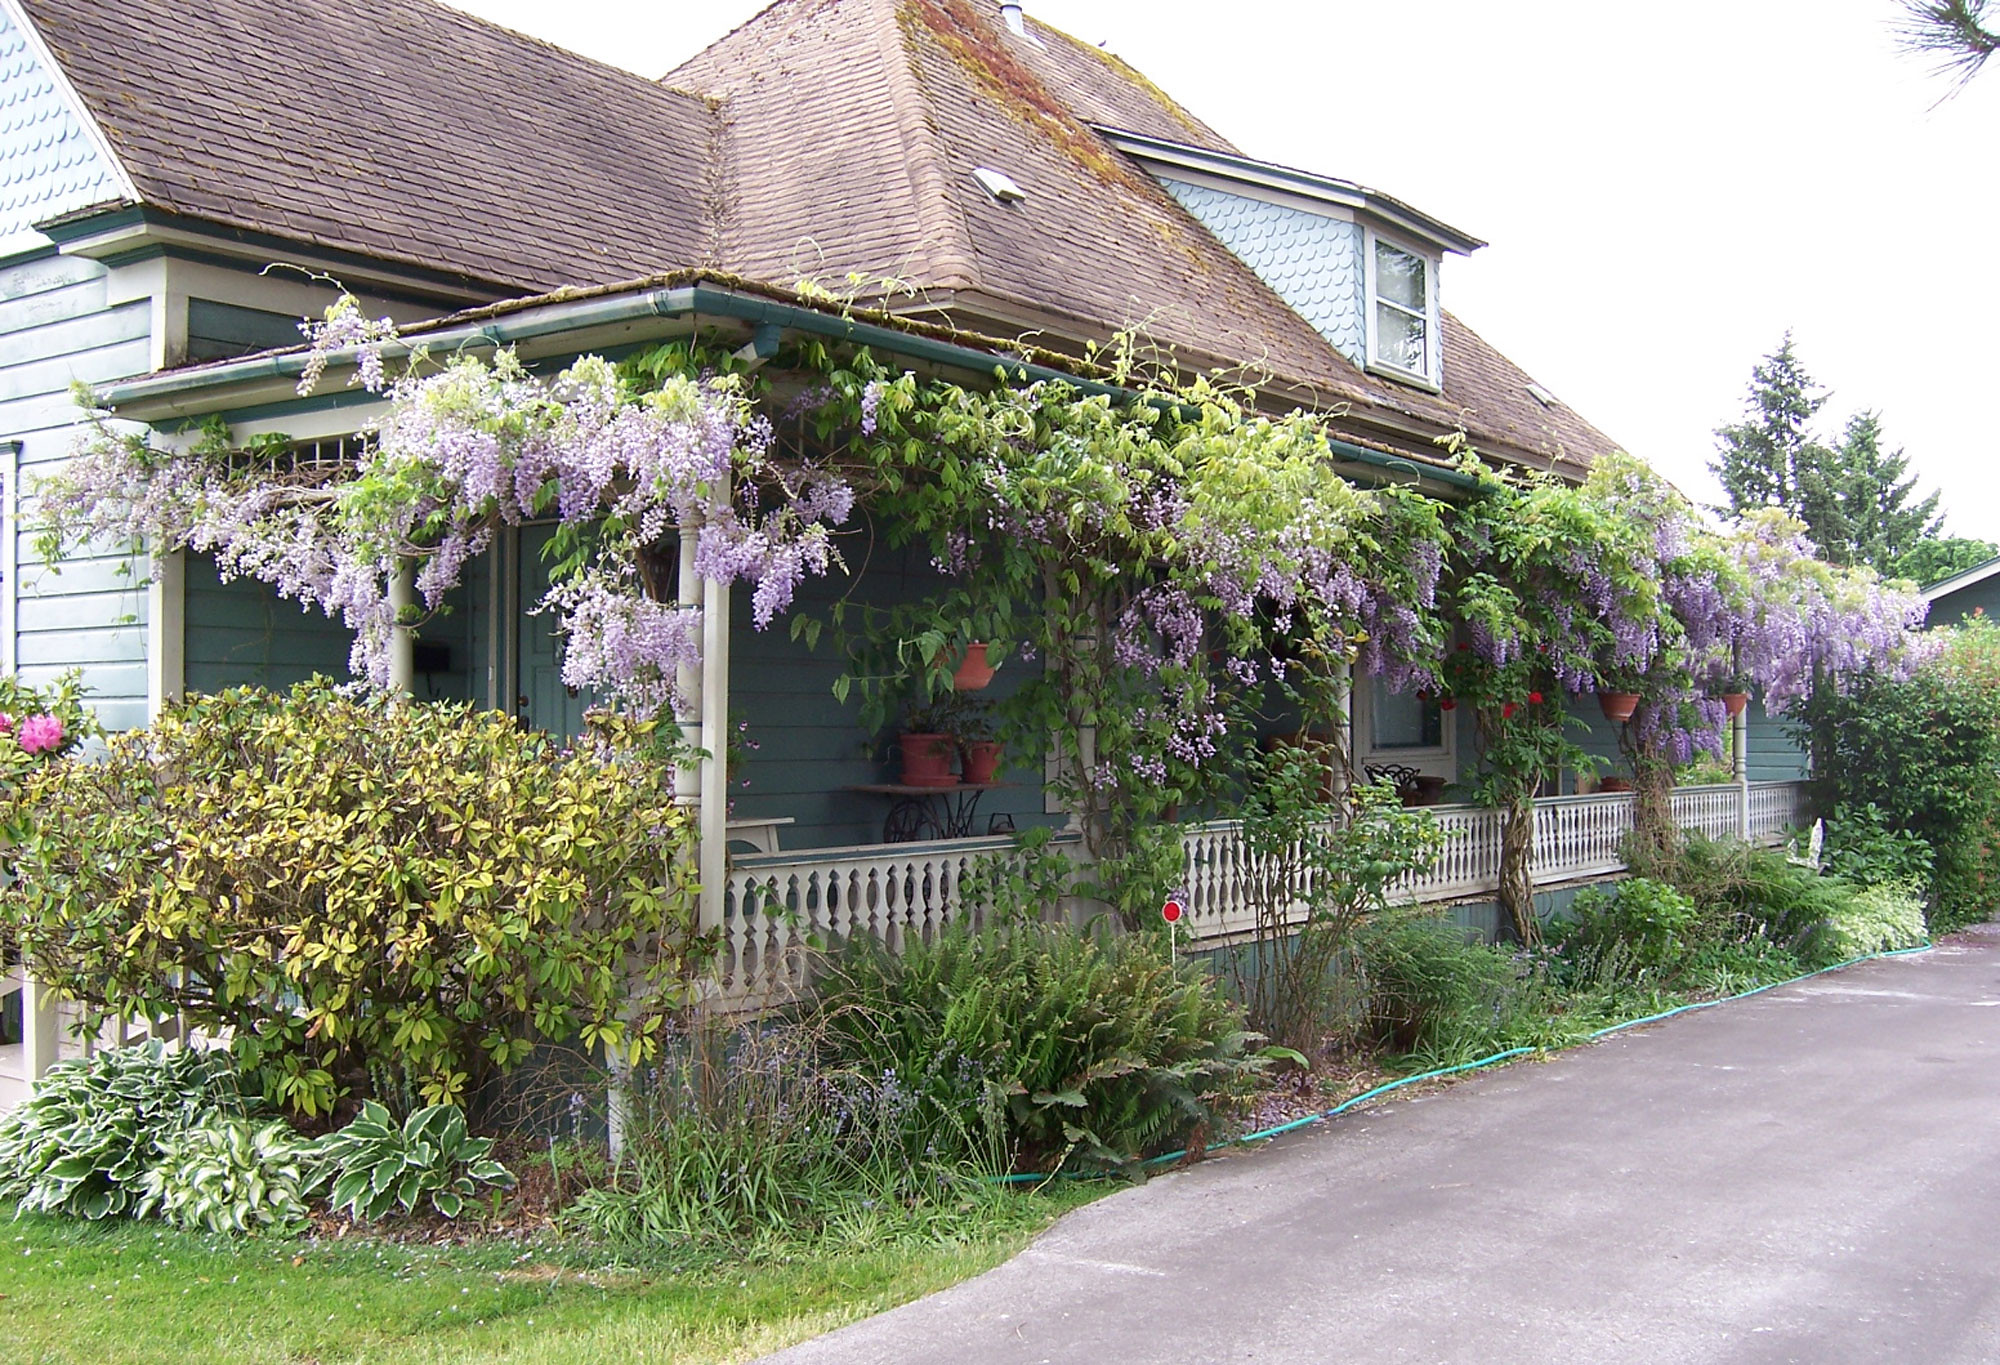 Wisteria care: Take out clippers twice a year and go to town